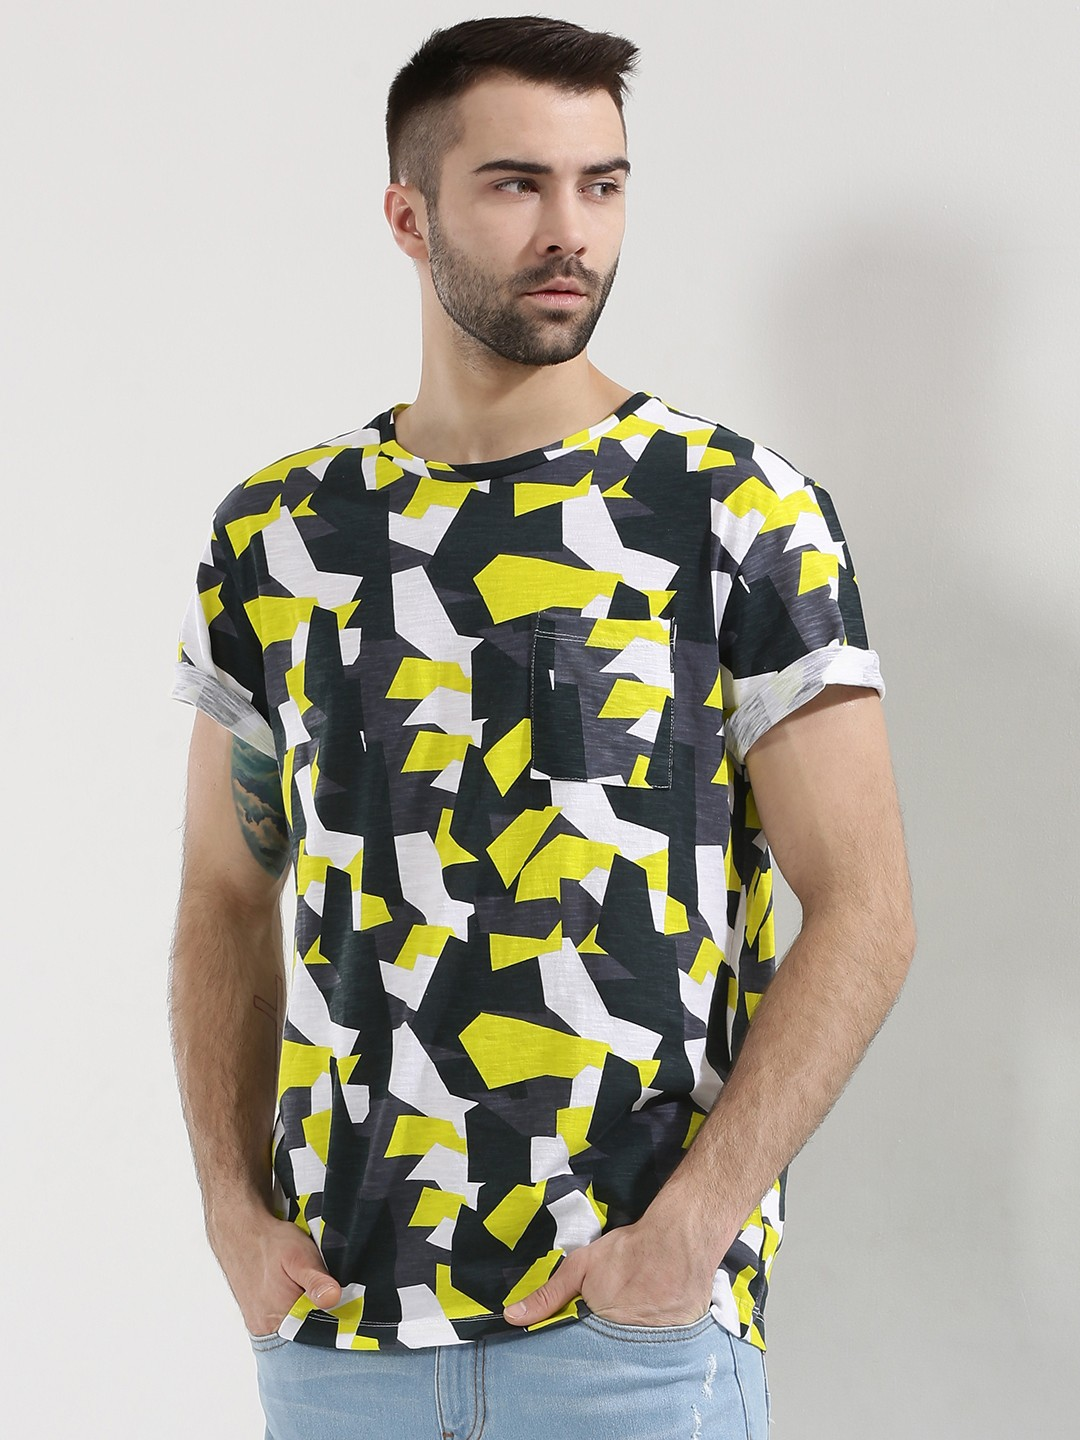 Buy koovs printed t shirt for men men 39 s multi t shirts for Couple printed t shirts india